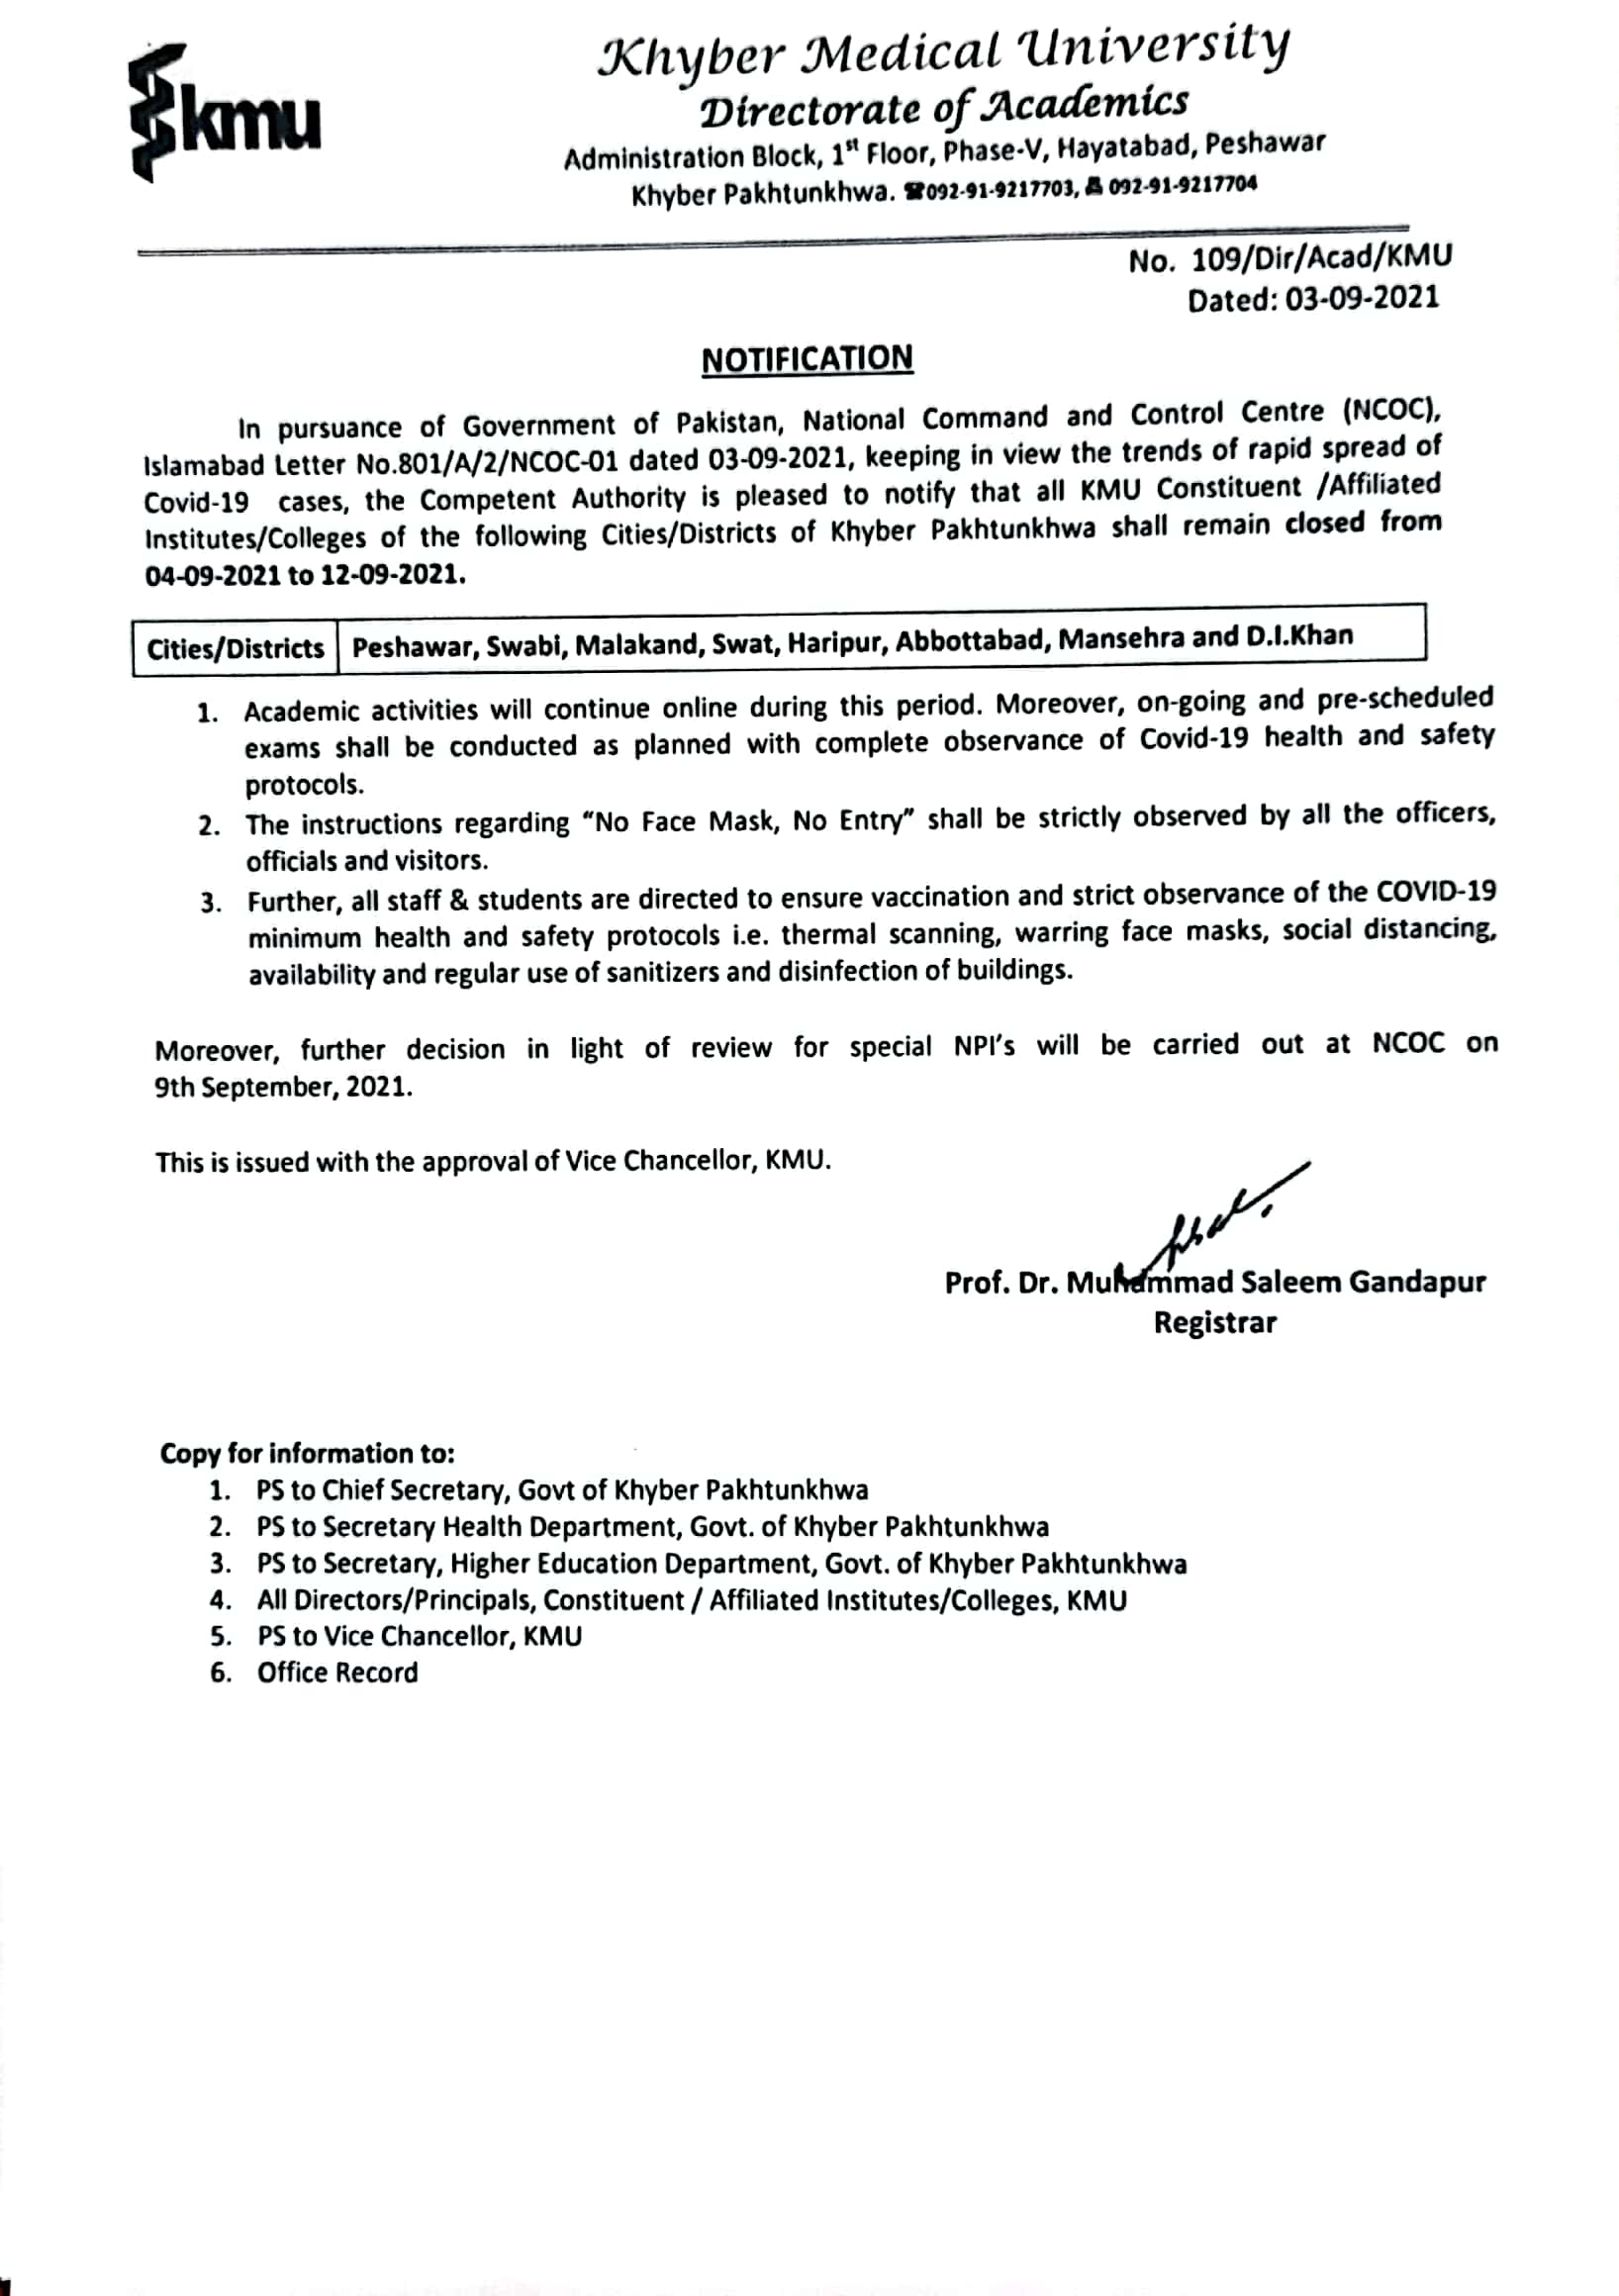 MTI-GKMC Swabi Shall remain closed from 04.09.2021 to 12.09.2021 moreover all the staff are directed to ensure there presence on duty place with complete observance of COVID-19 Health and safety protocols